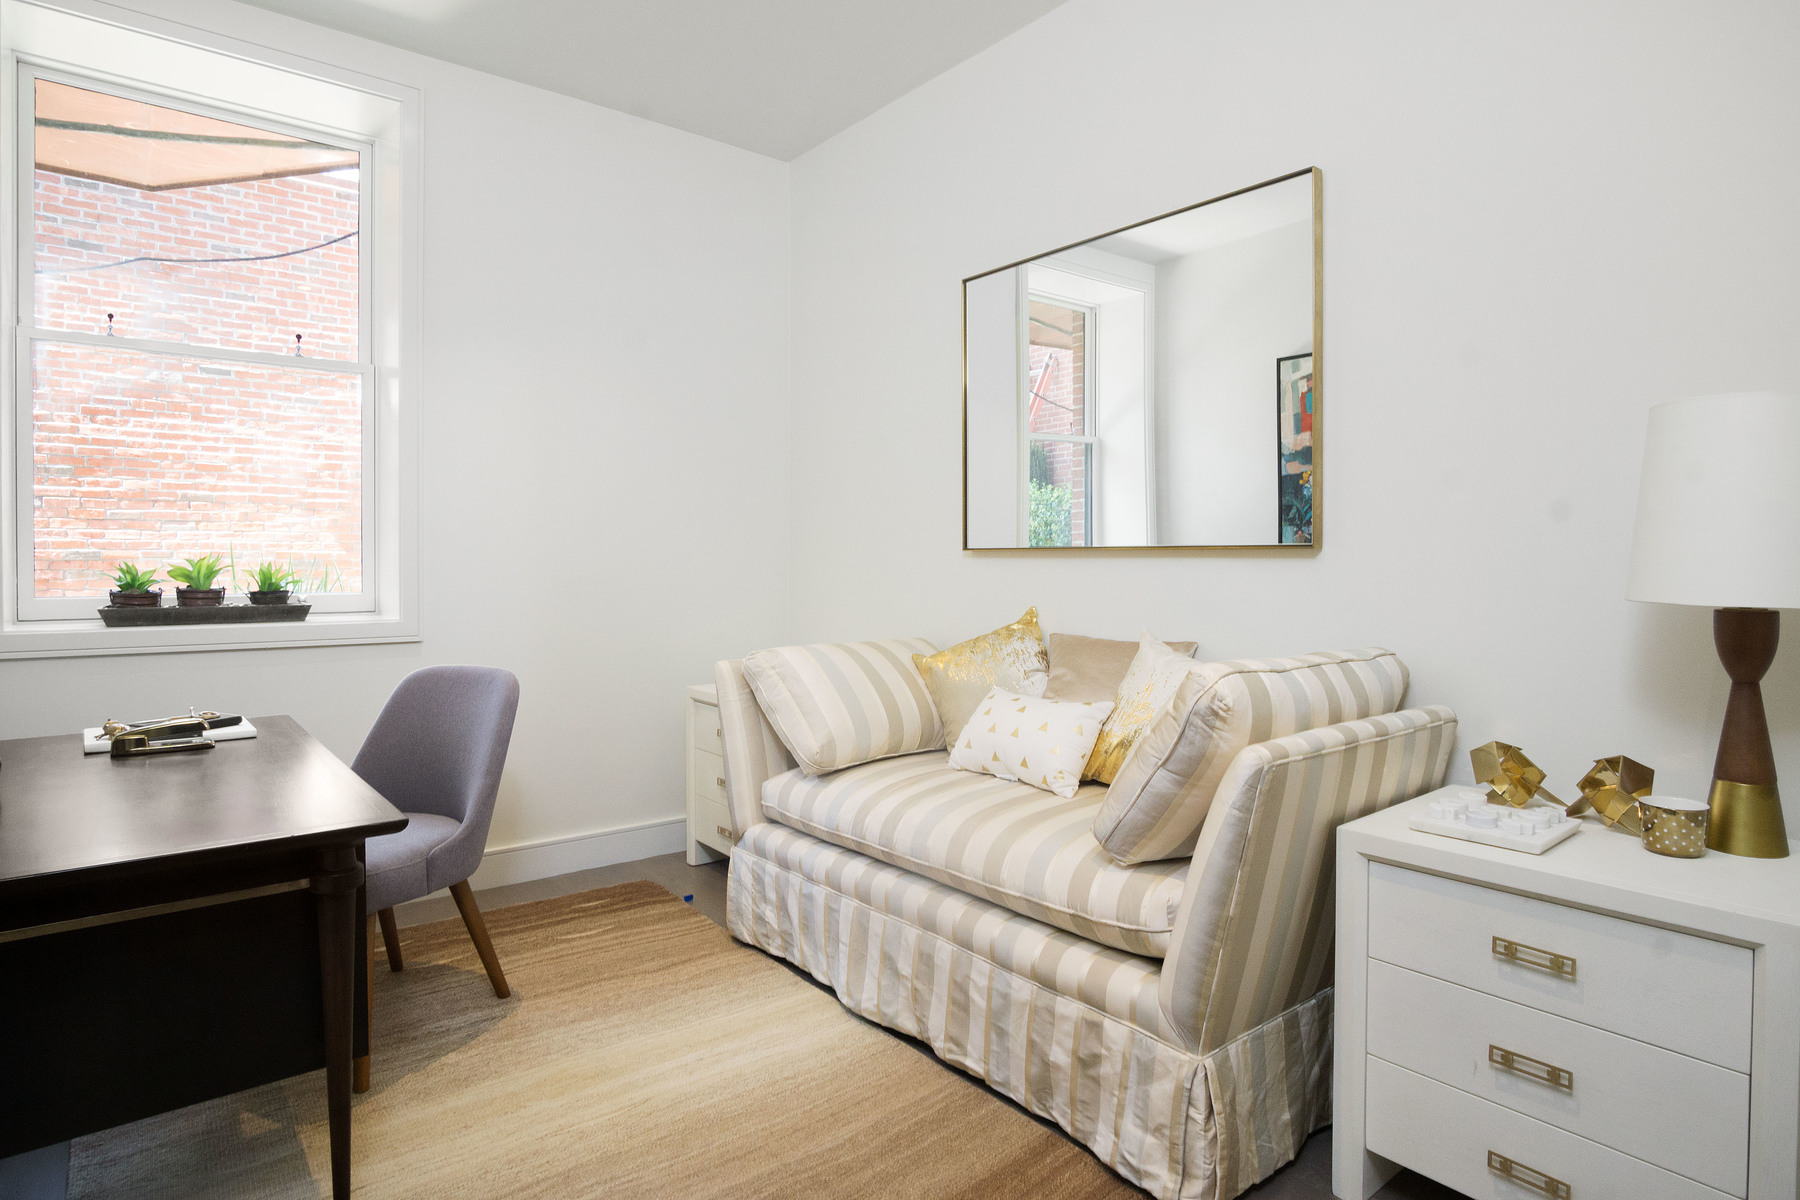 Additional photo for property listing at New Construction Overlooking Charles River 474 Beacon Street Unit 1 Boston, Massachusetts 02115 United States